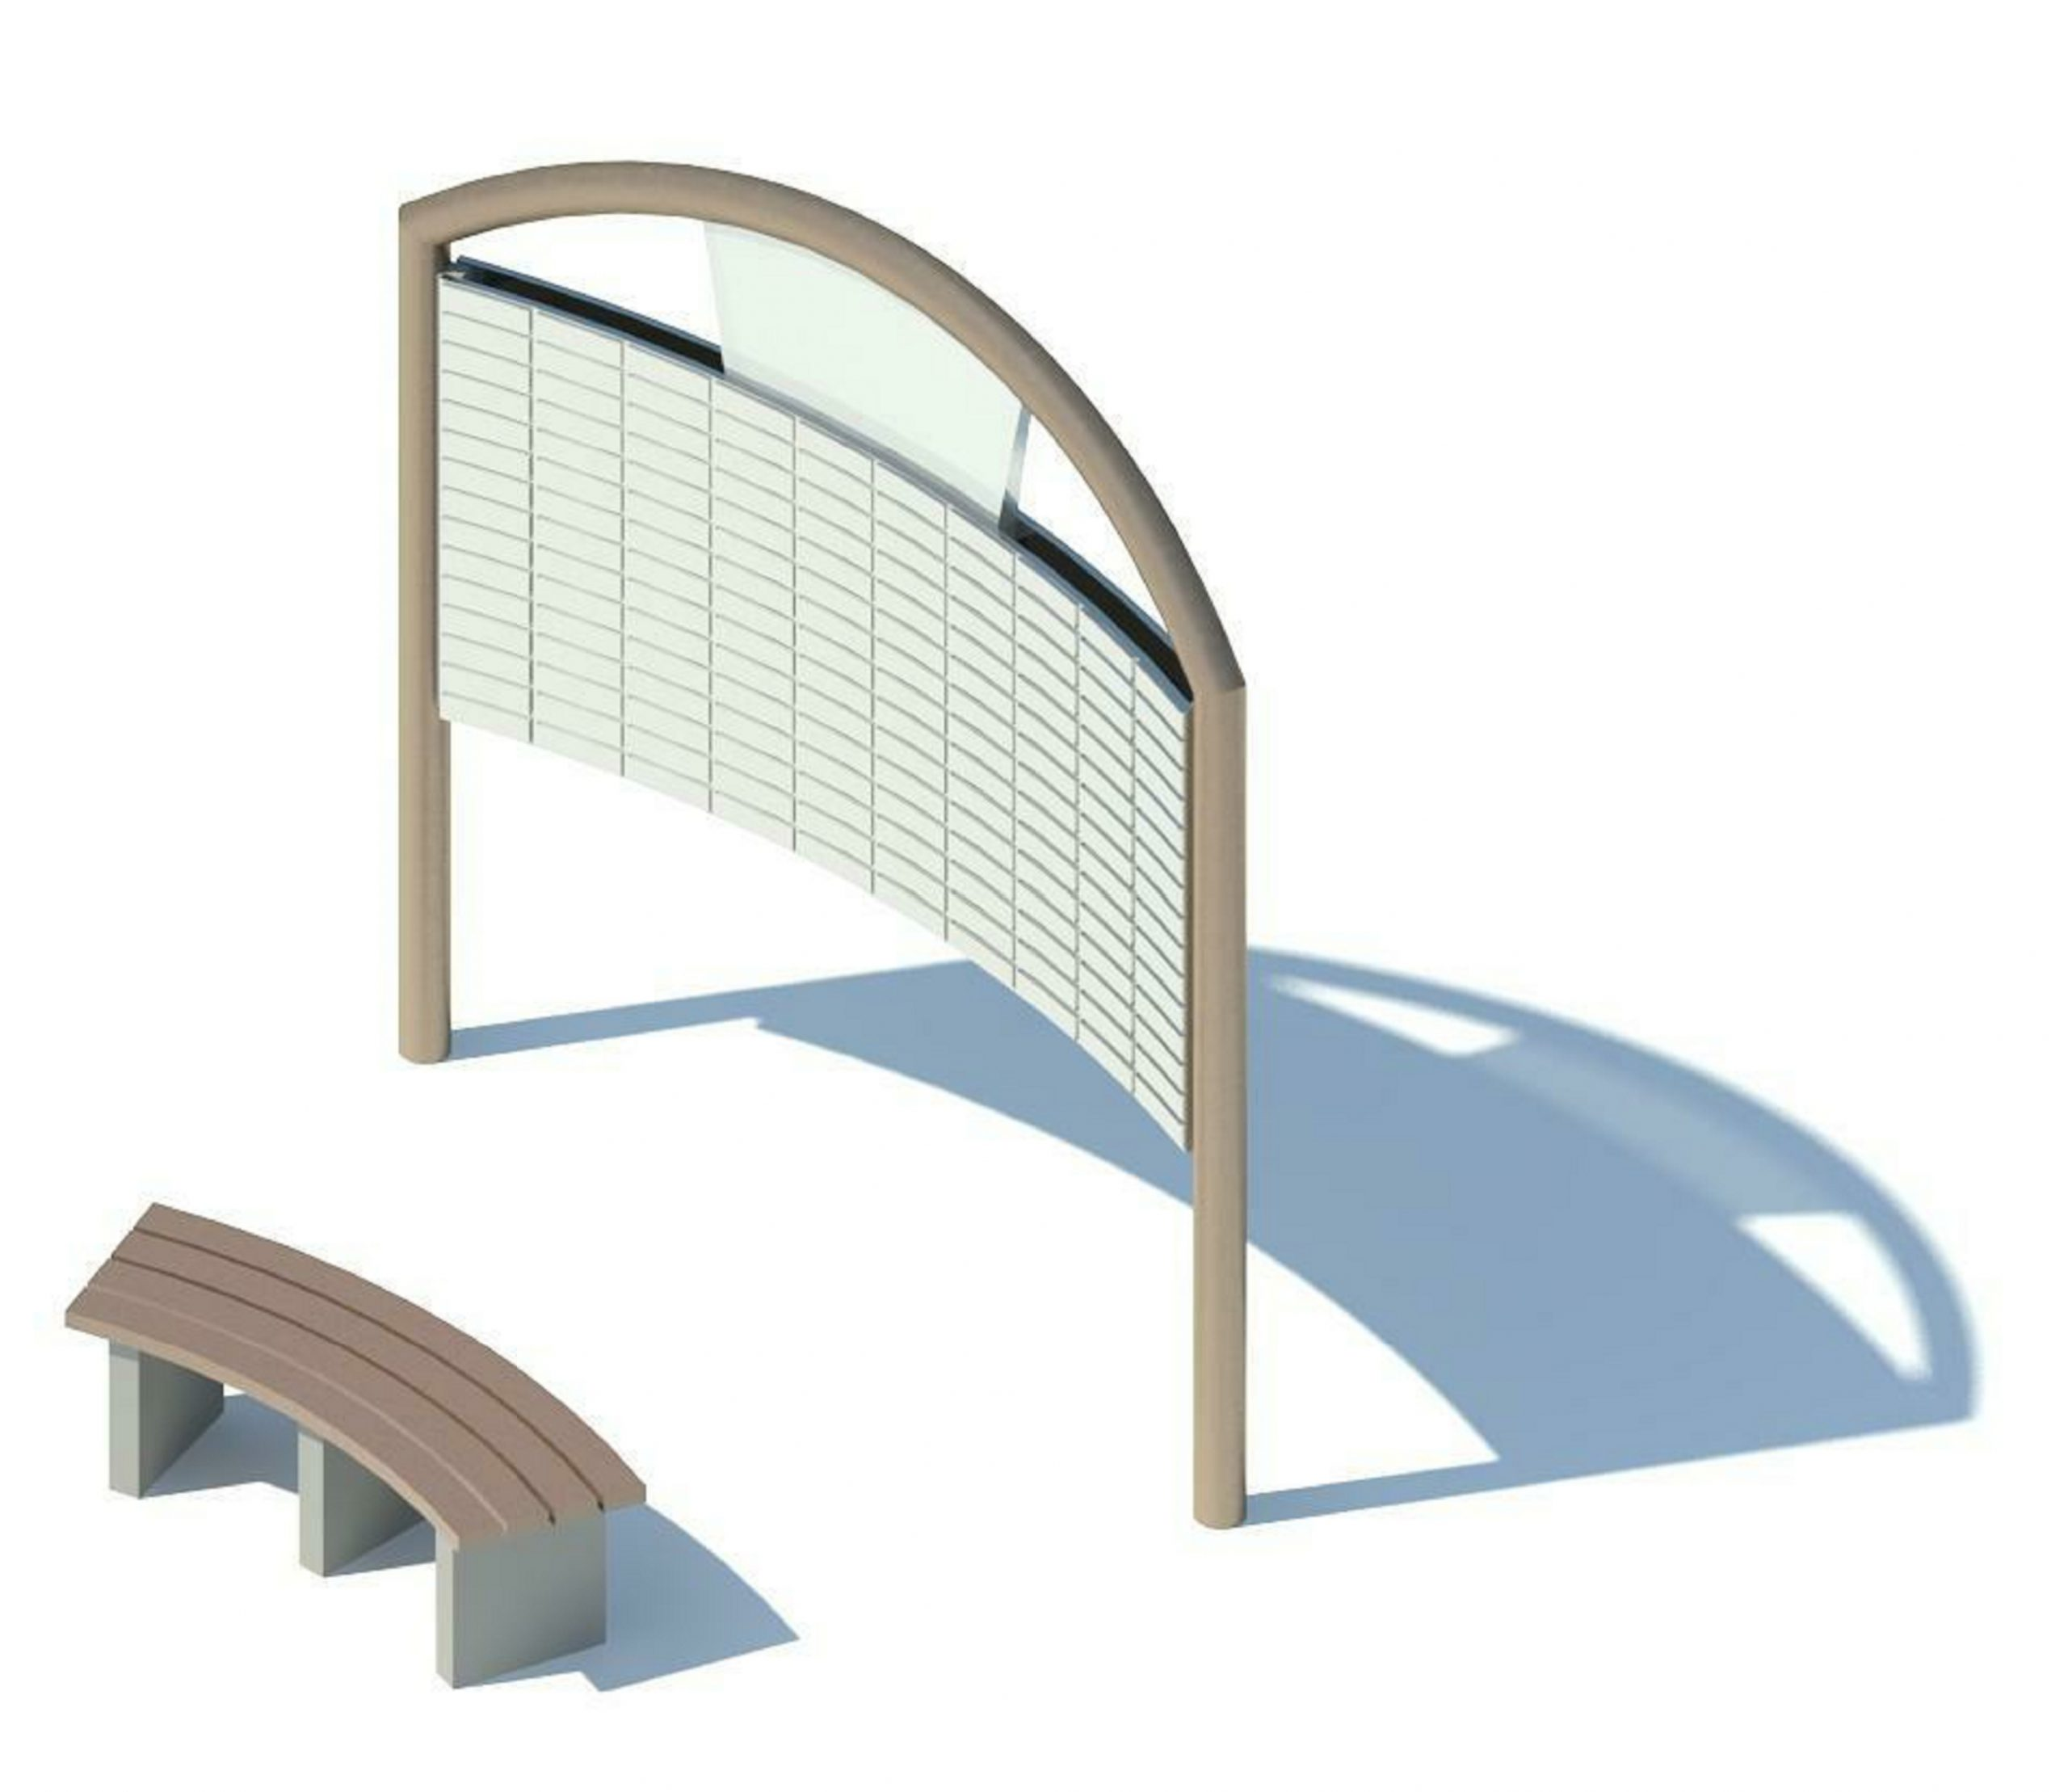 Donor Arch - View 1